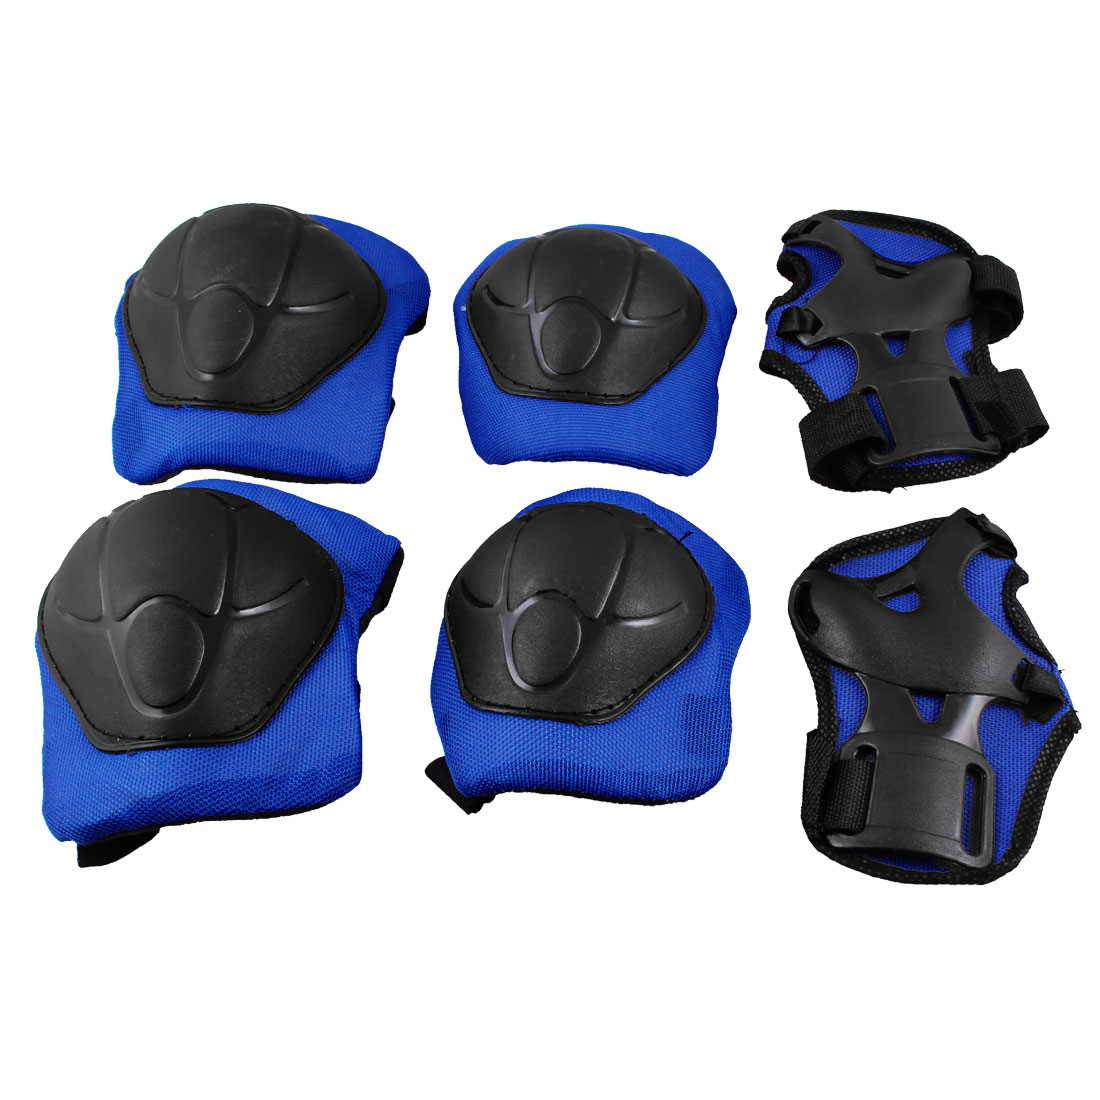 Kids Biking Skating Skateboard Gear Knee Elbow Pads Wrist Protector Blue Black 3 in 1